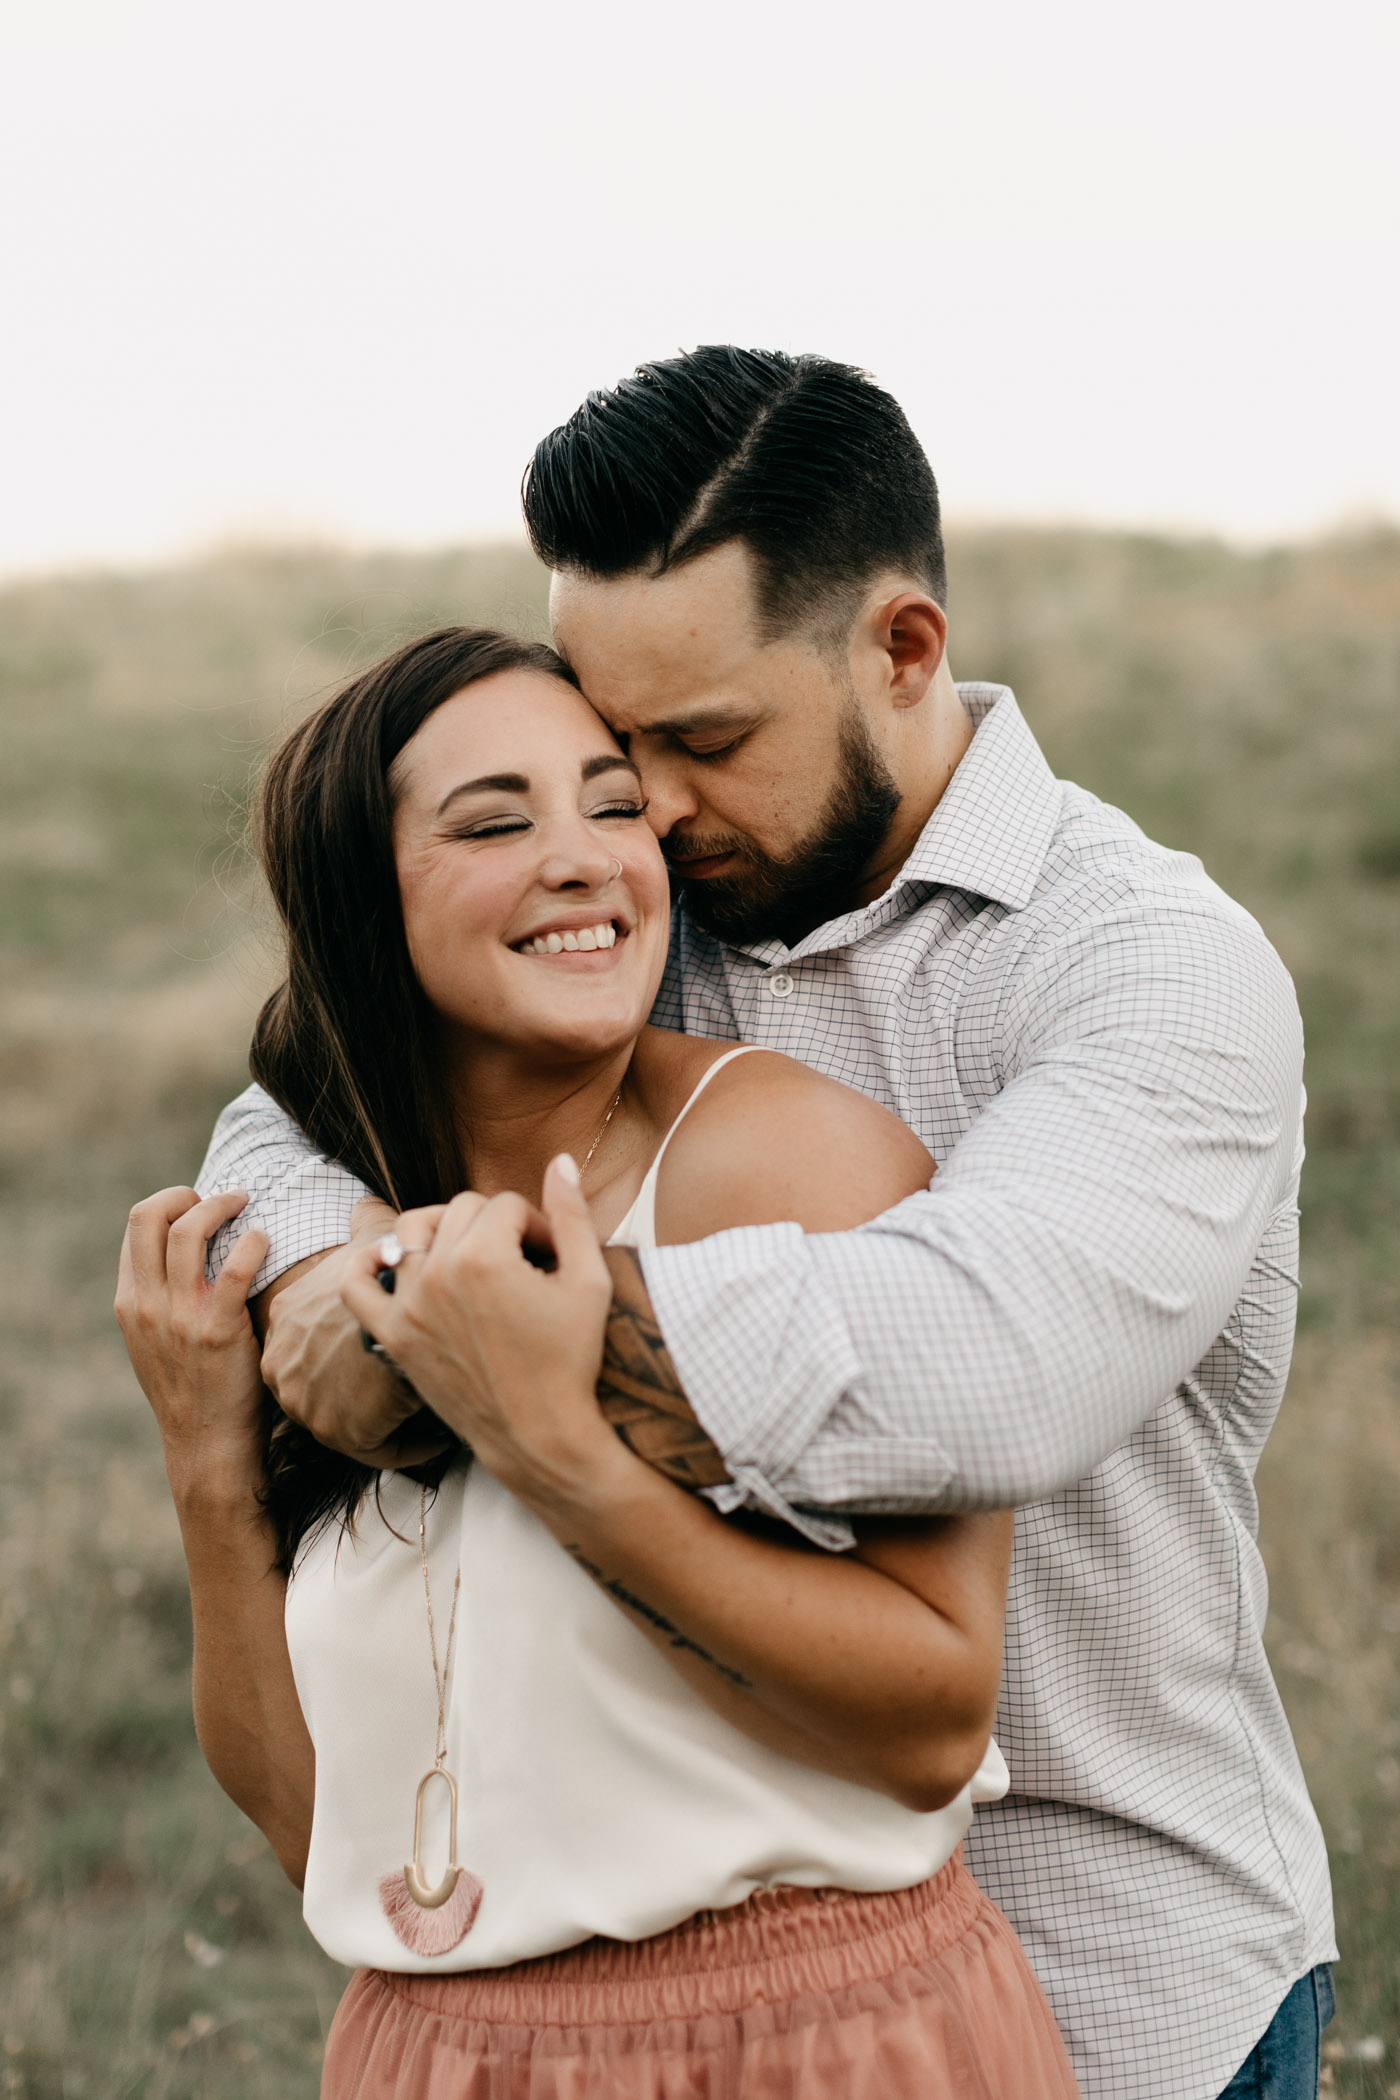 engaged couple snuggling in a field in Texas summer